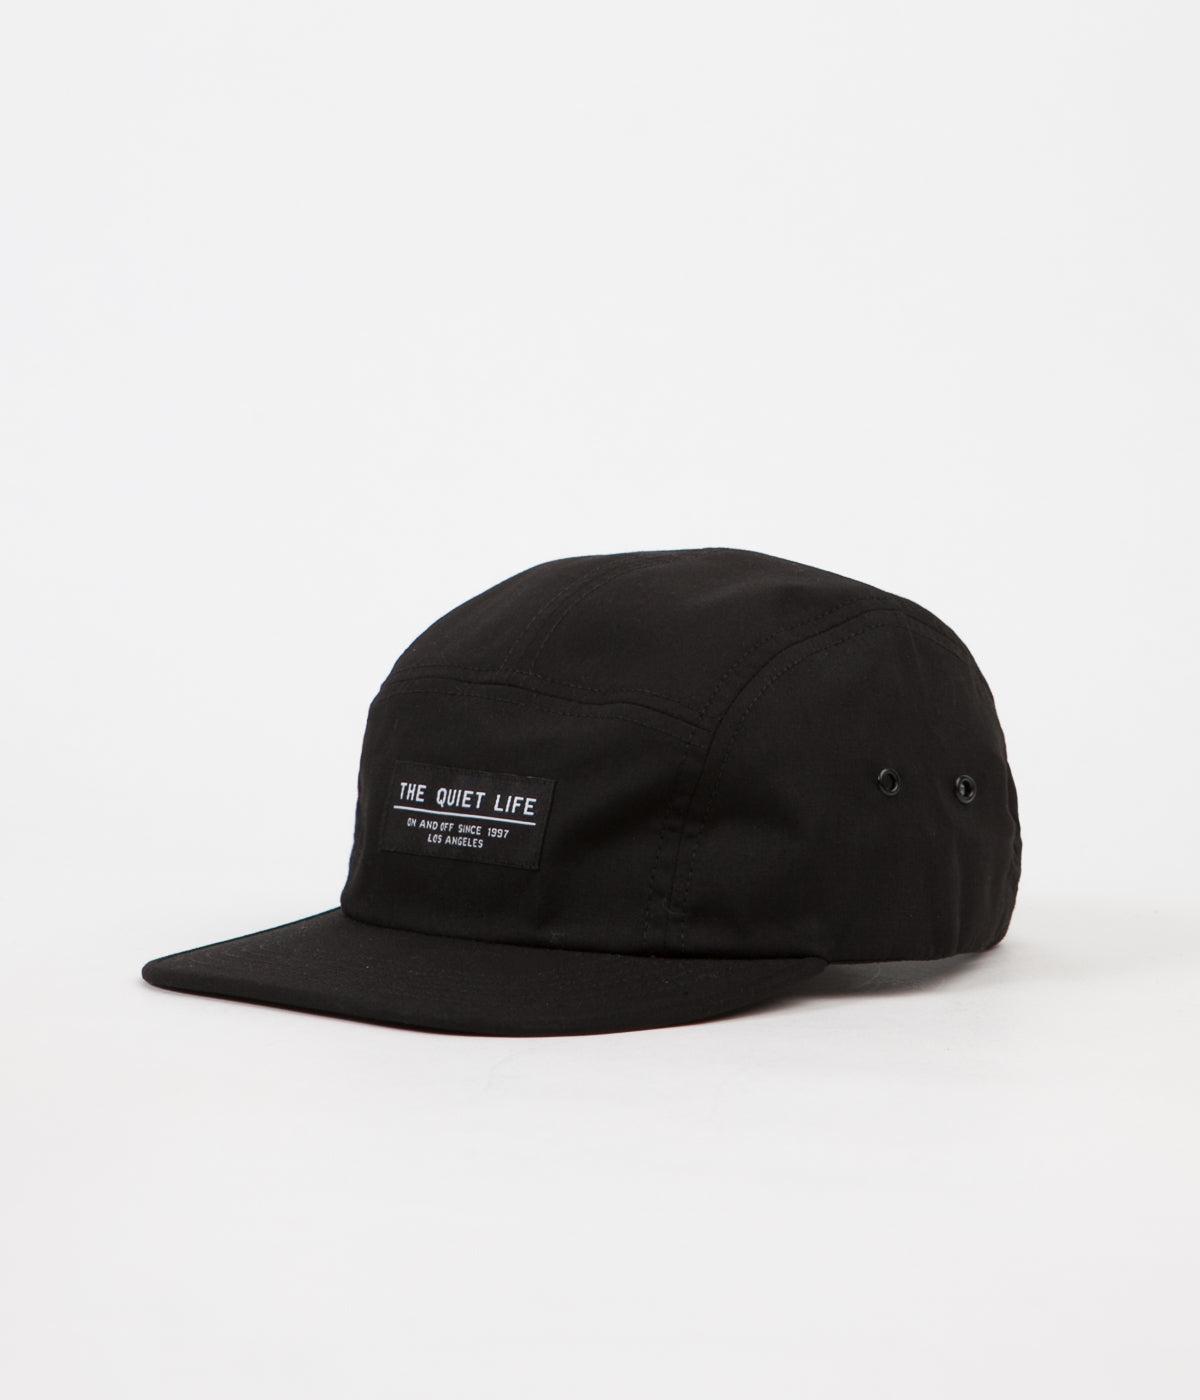 402f5c56e4bc5 The Quiet Life Foundation 5 Panel Cap - Black